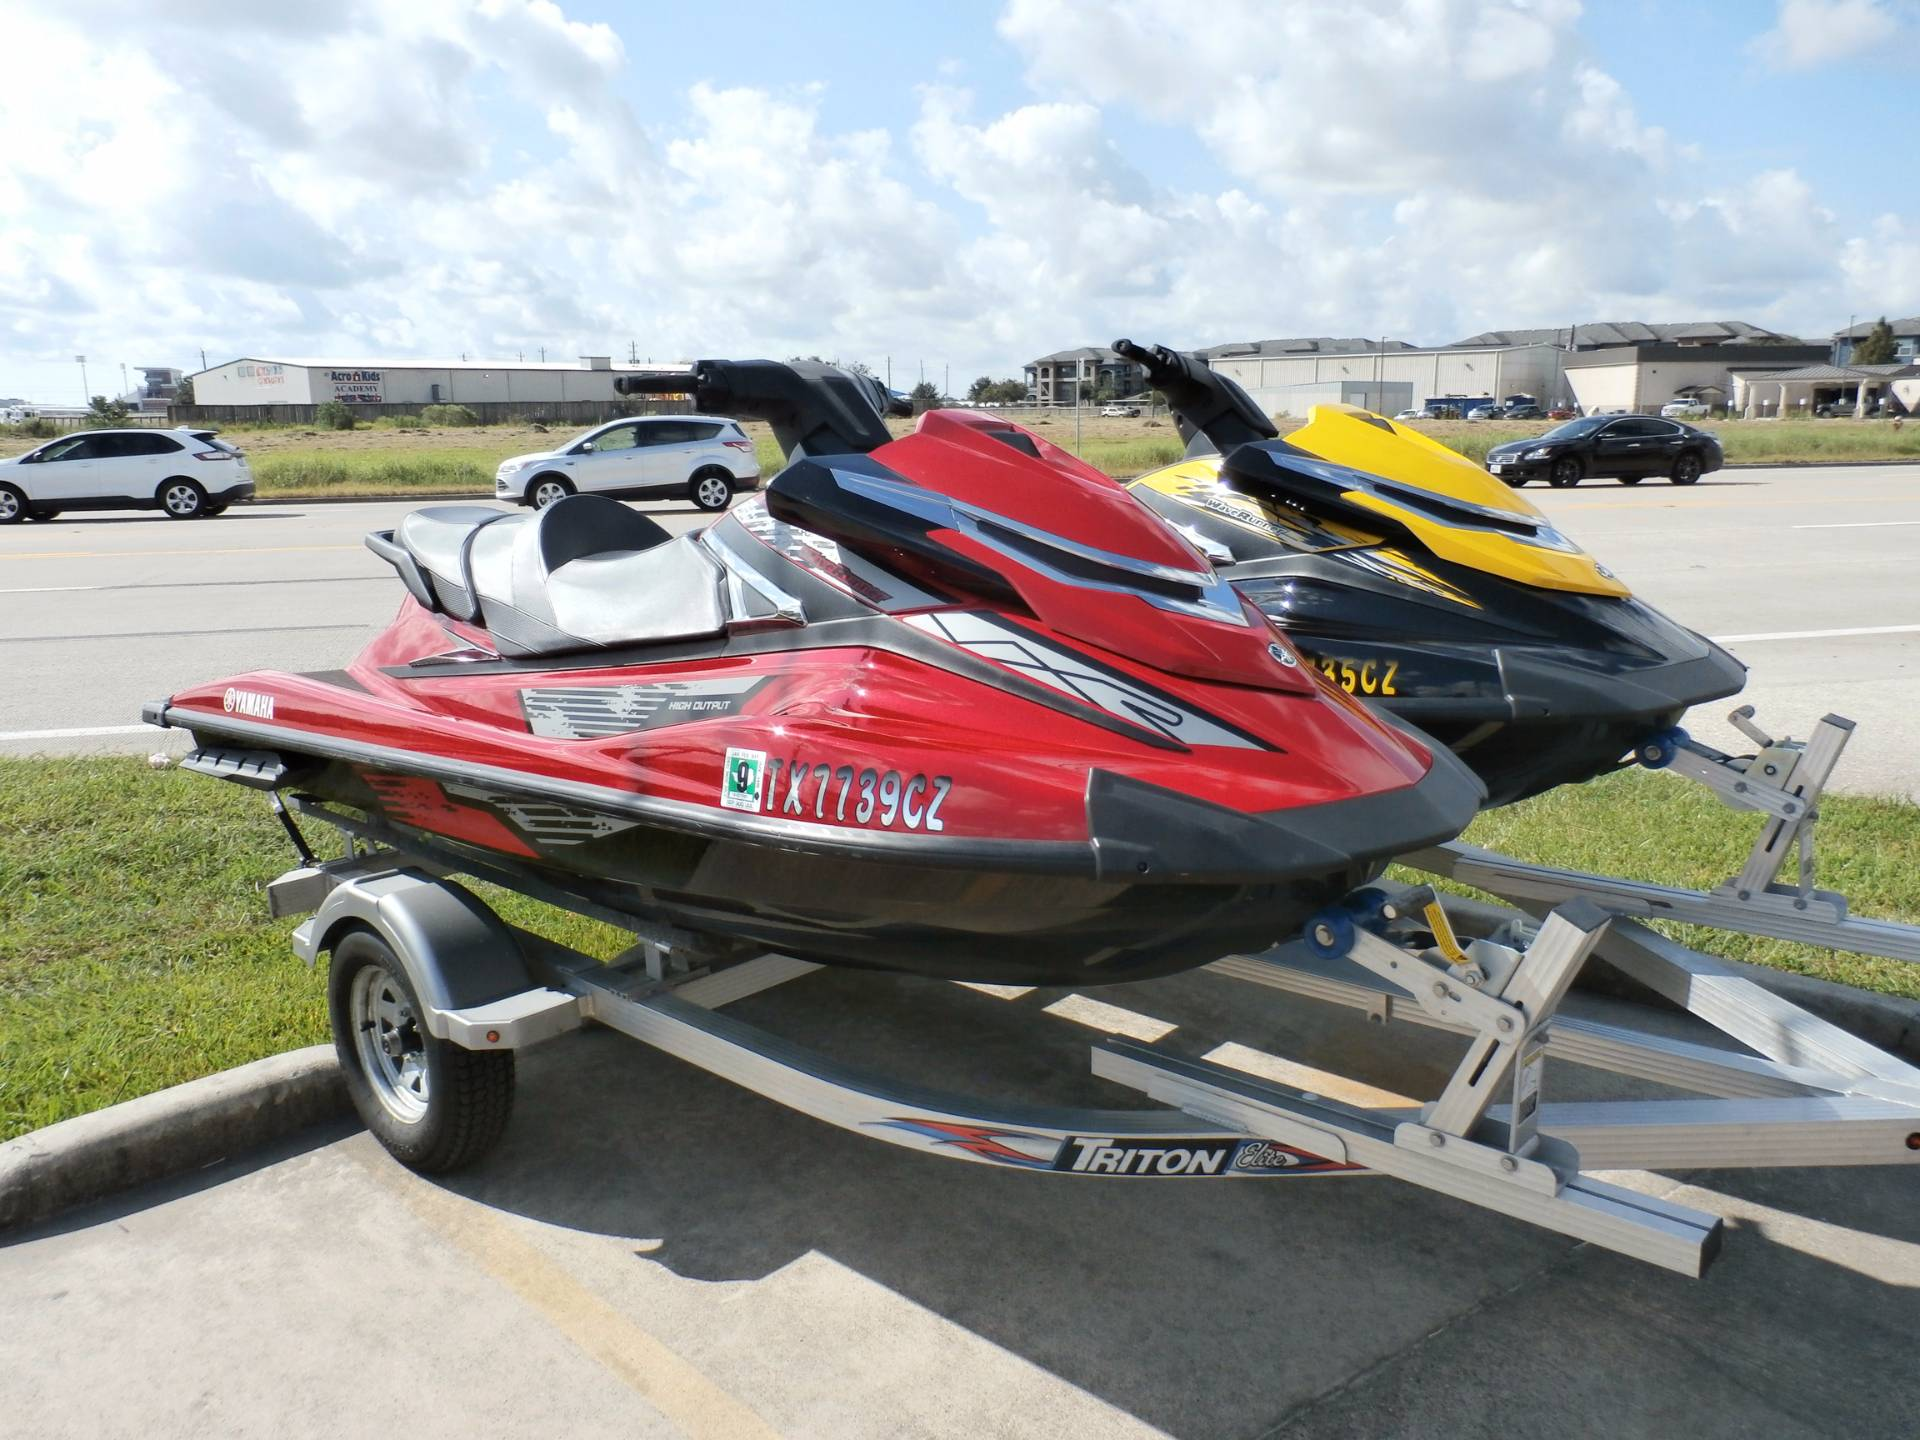 2015 Yamaha VXR for sale 71432